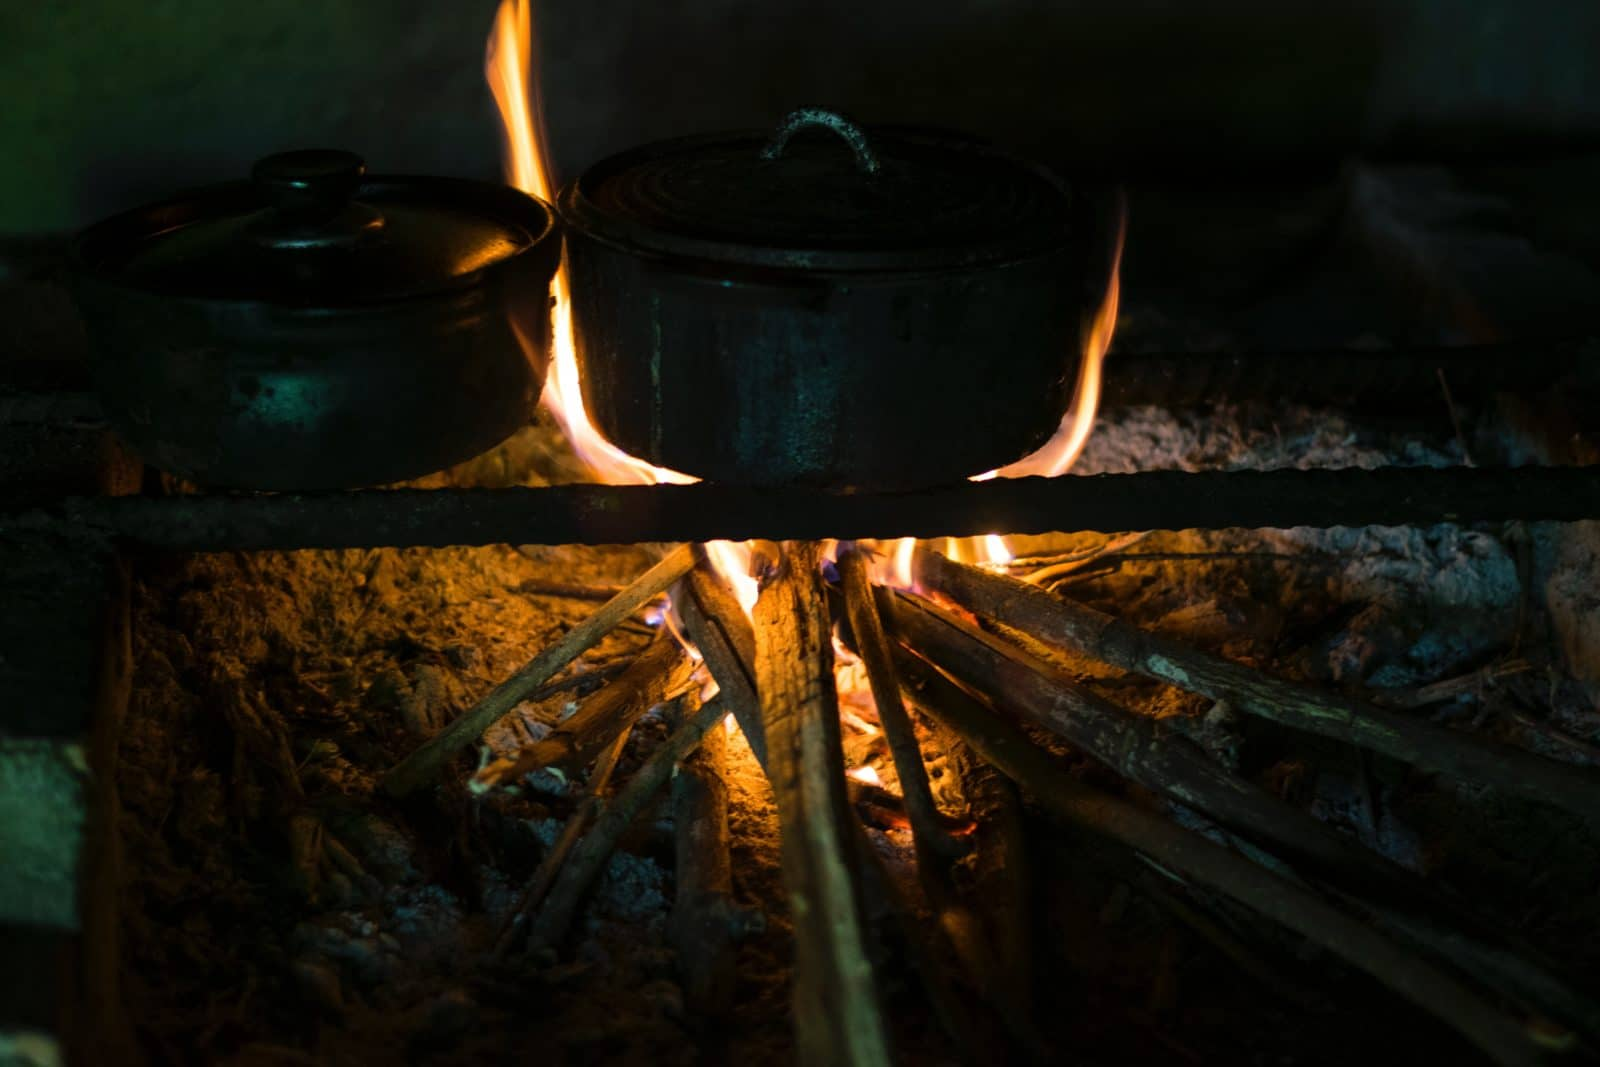 Cooking pot over a firewood